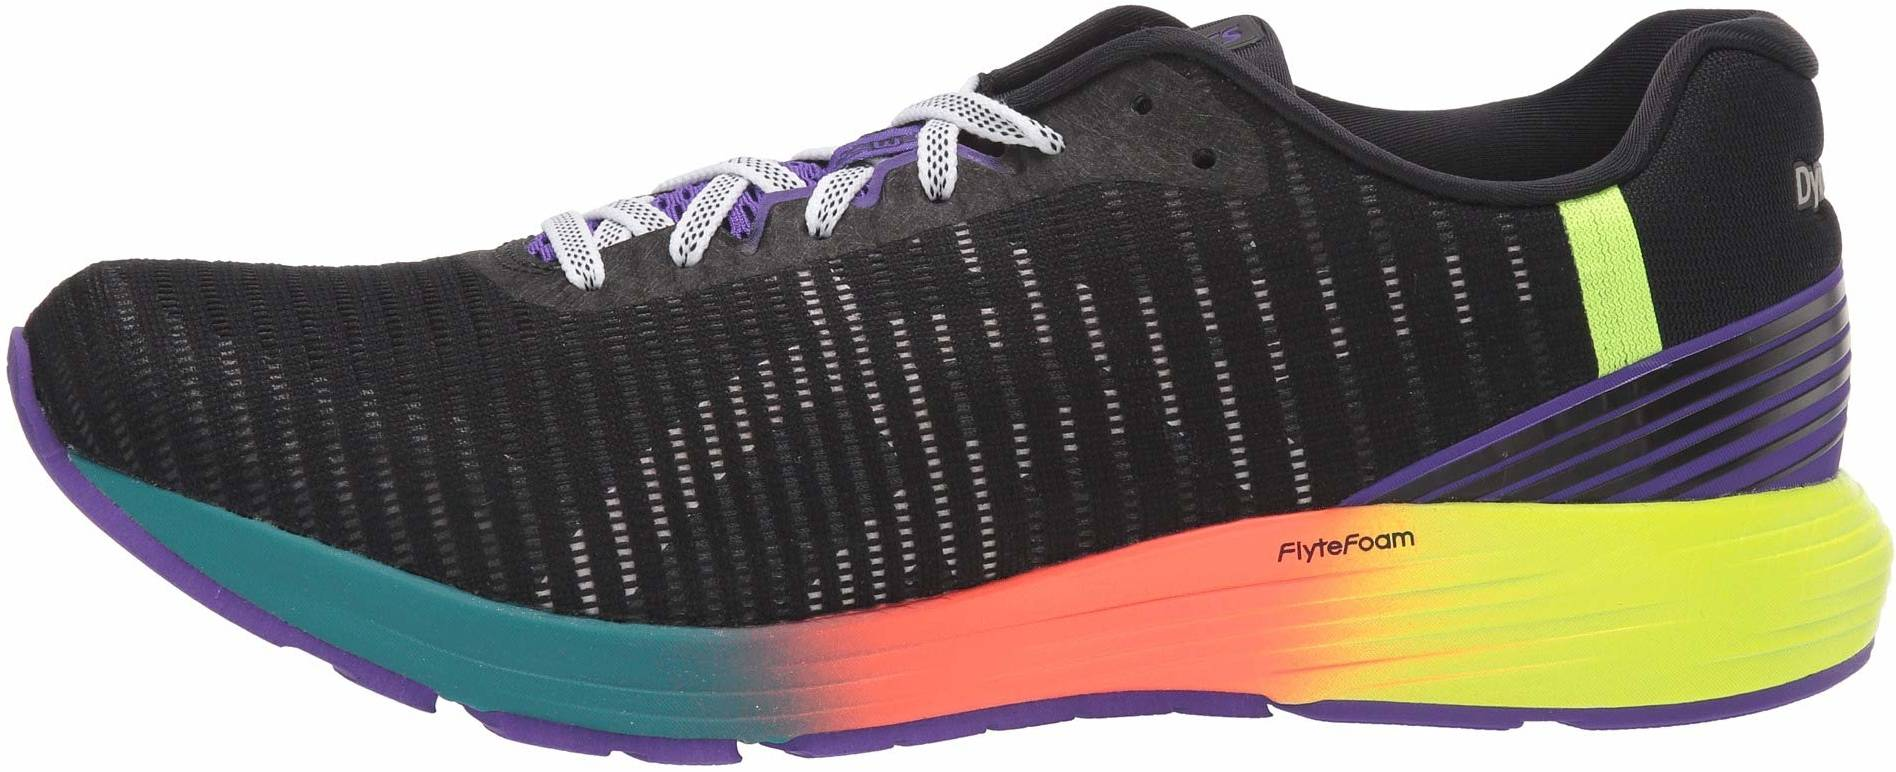 8 Reasons to/NOT to Buy Asics DynaFlyte 3 SP (Aug 2021) | RunRepeat